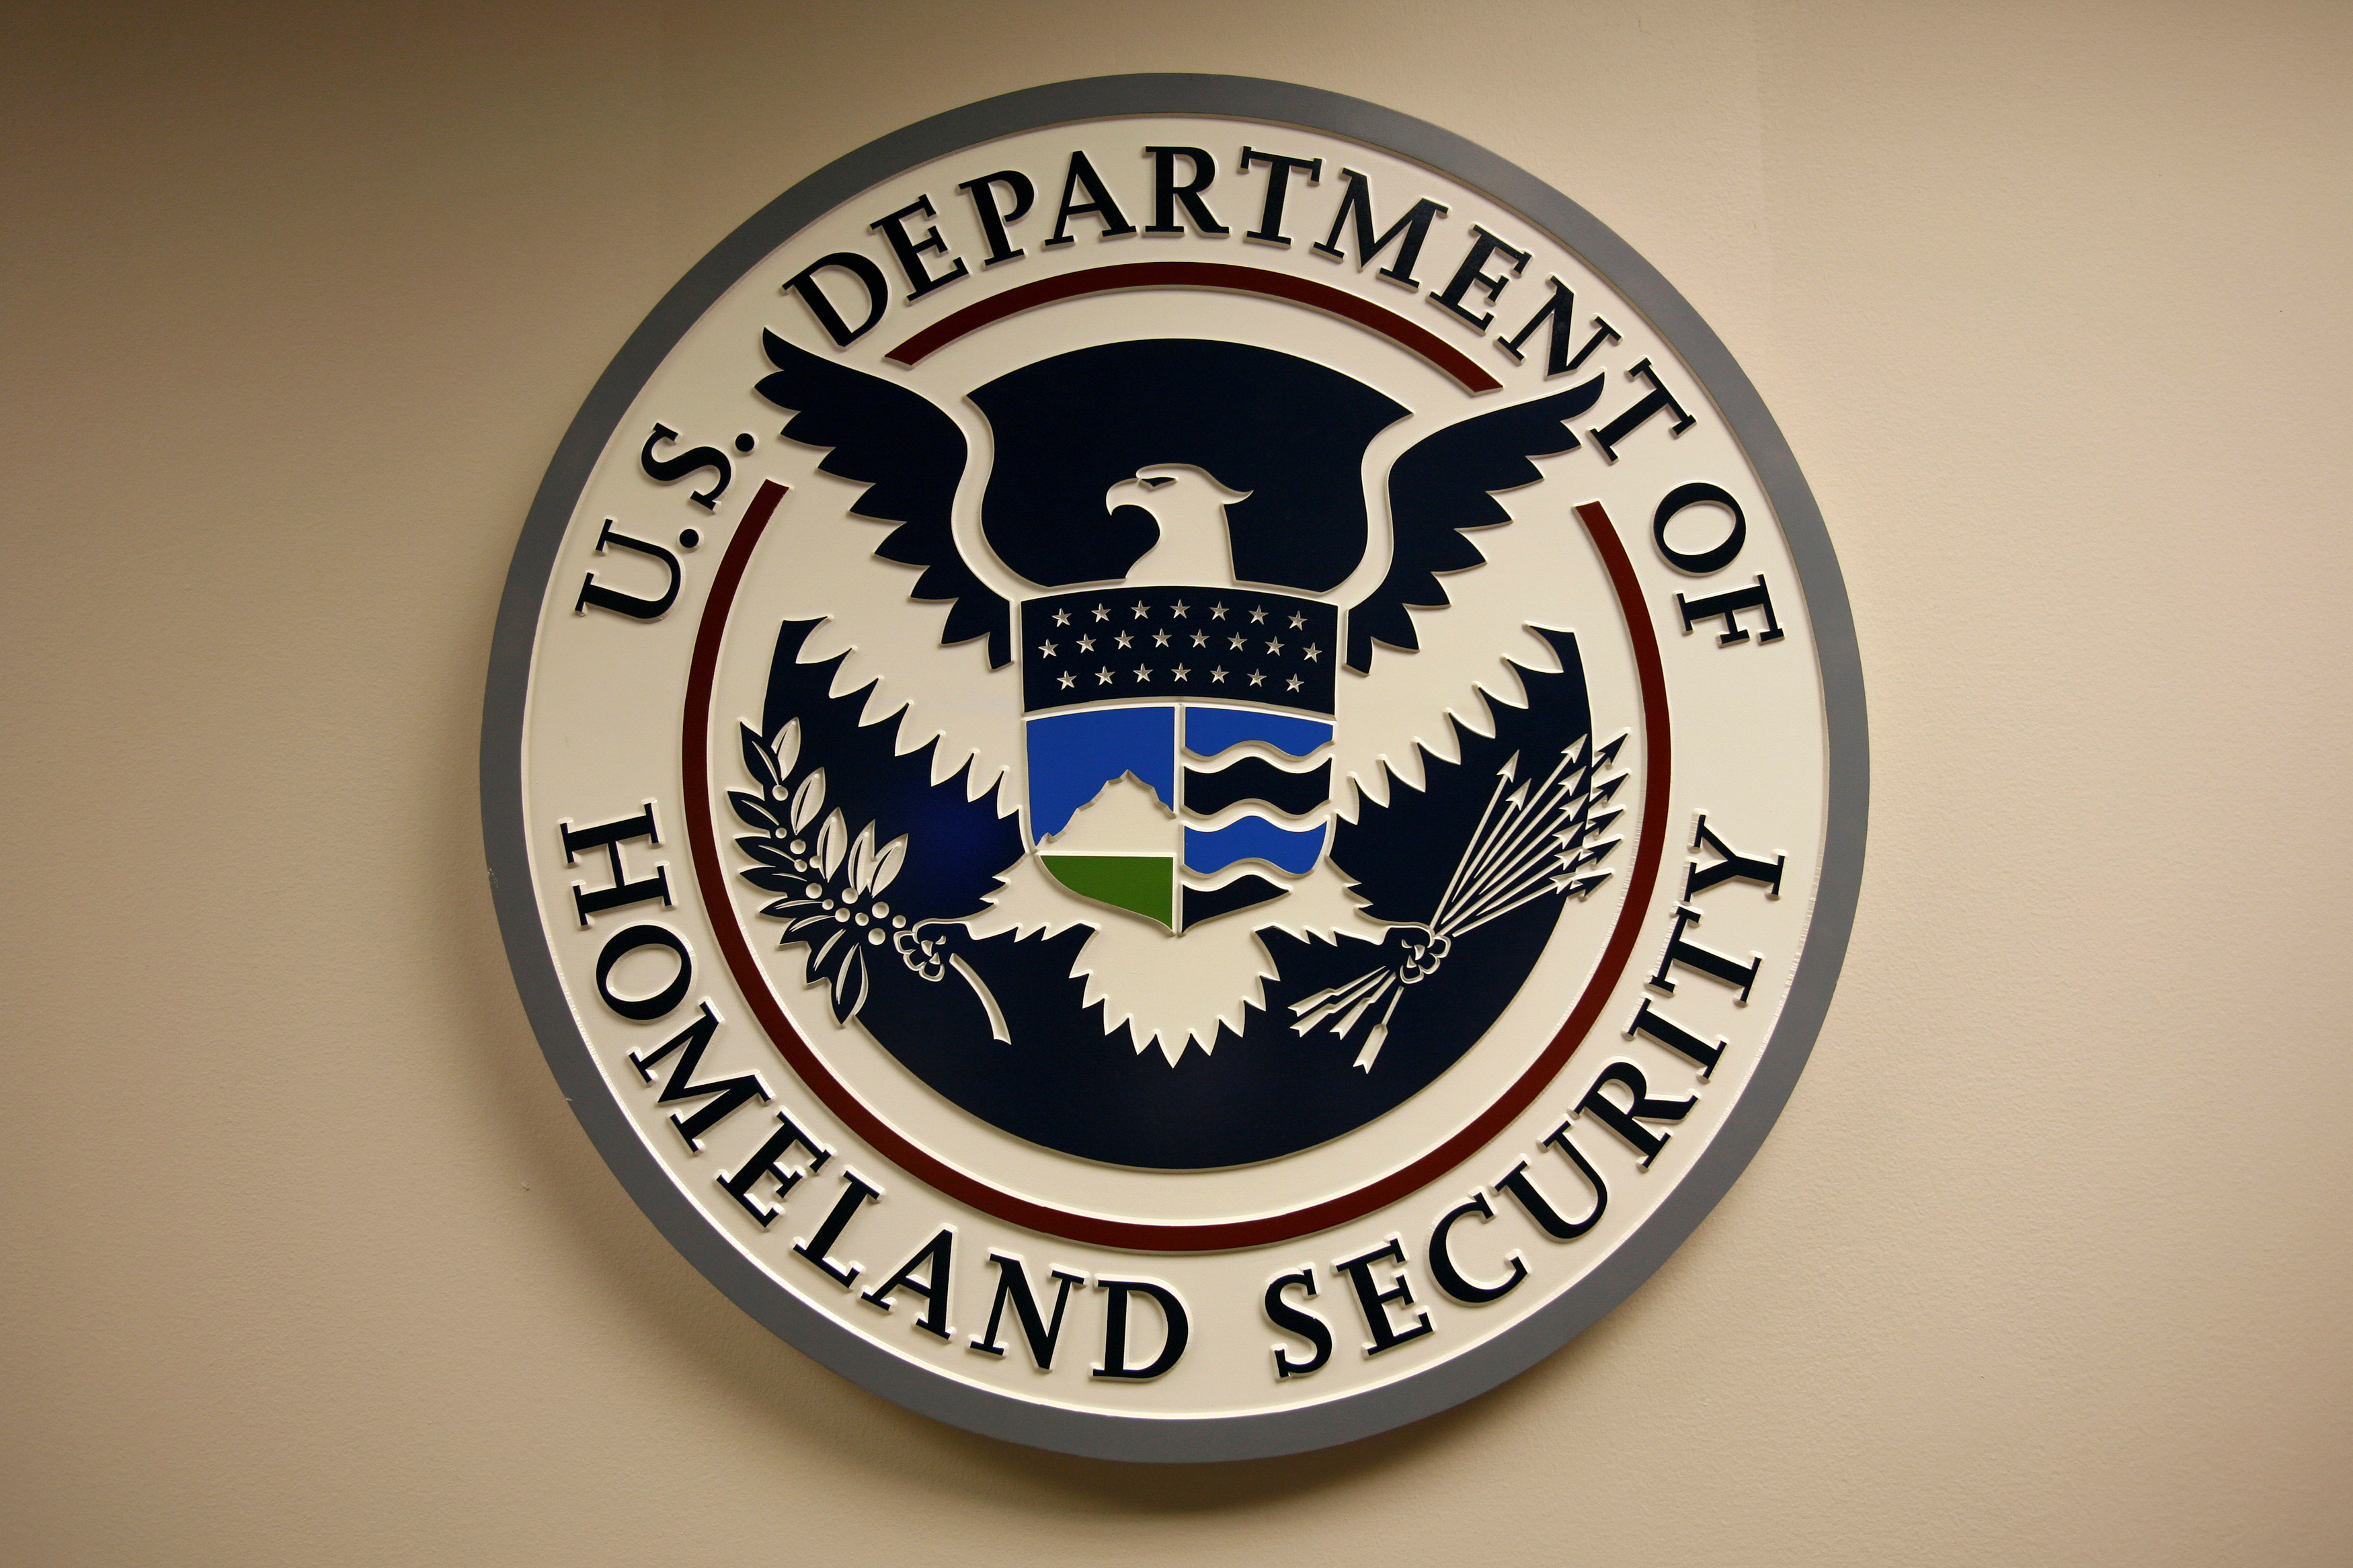 U.S. Department of Homeland Security emblem is pictured at the National Cybersecurity & Communications Integration Center (NCCIC) located just outside Washington in Arlington, Virginia September 24, 2010.  REUTERS/Hyungwon Kang/File Photo